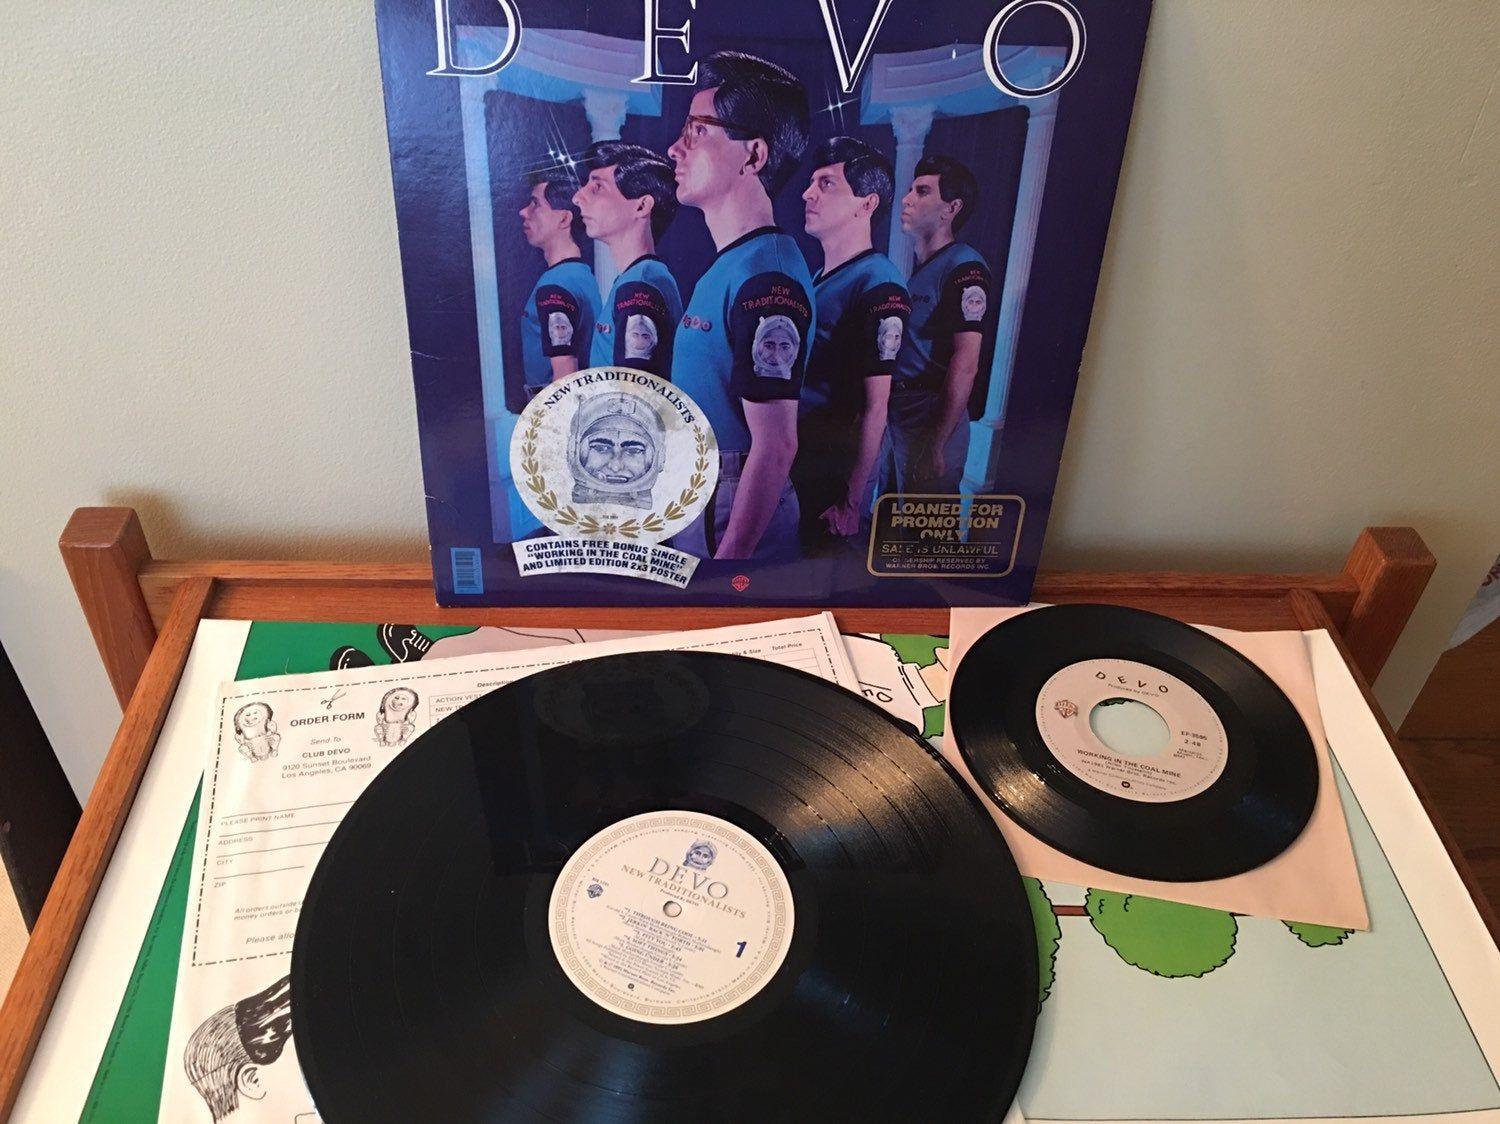 Devo New Traditionalists Vinyl Lp 12 Vinyl Record Promo Copy With Bonus 45 And Poster Working In The Coal Mine Devo Record Bsk 3595 Vinyl Records Vinyl Vinyl Record Album